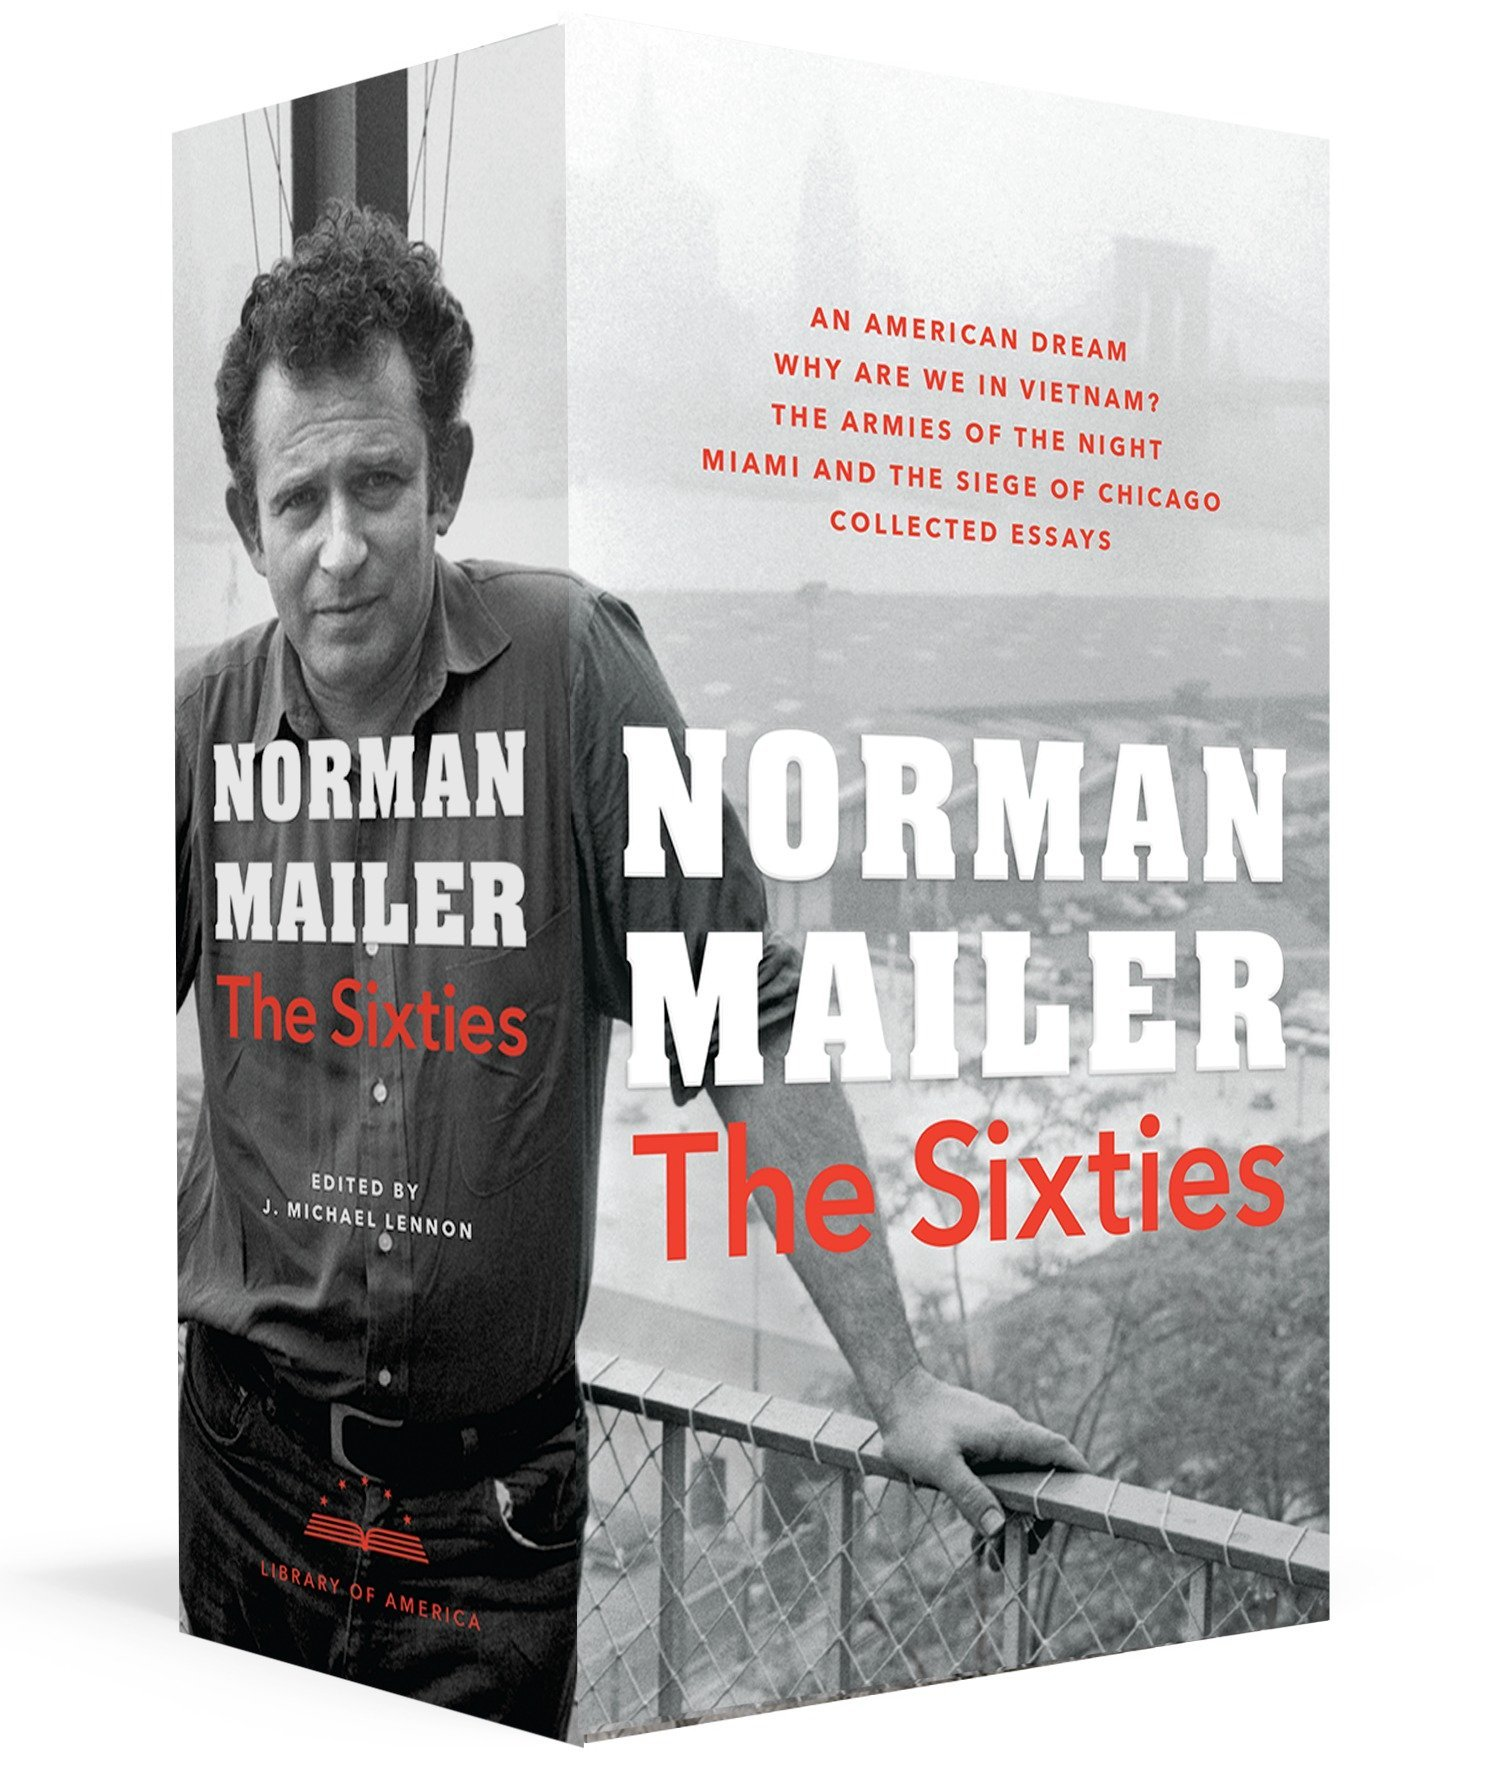 Norman Mailer: The Sixties: A Library of America Boxed Set (The Library of America) pdf